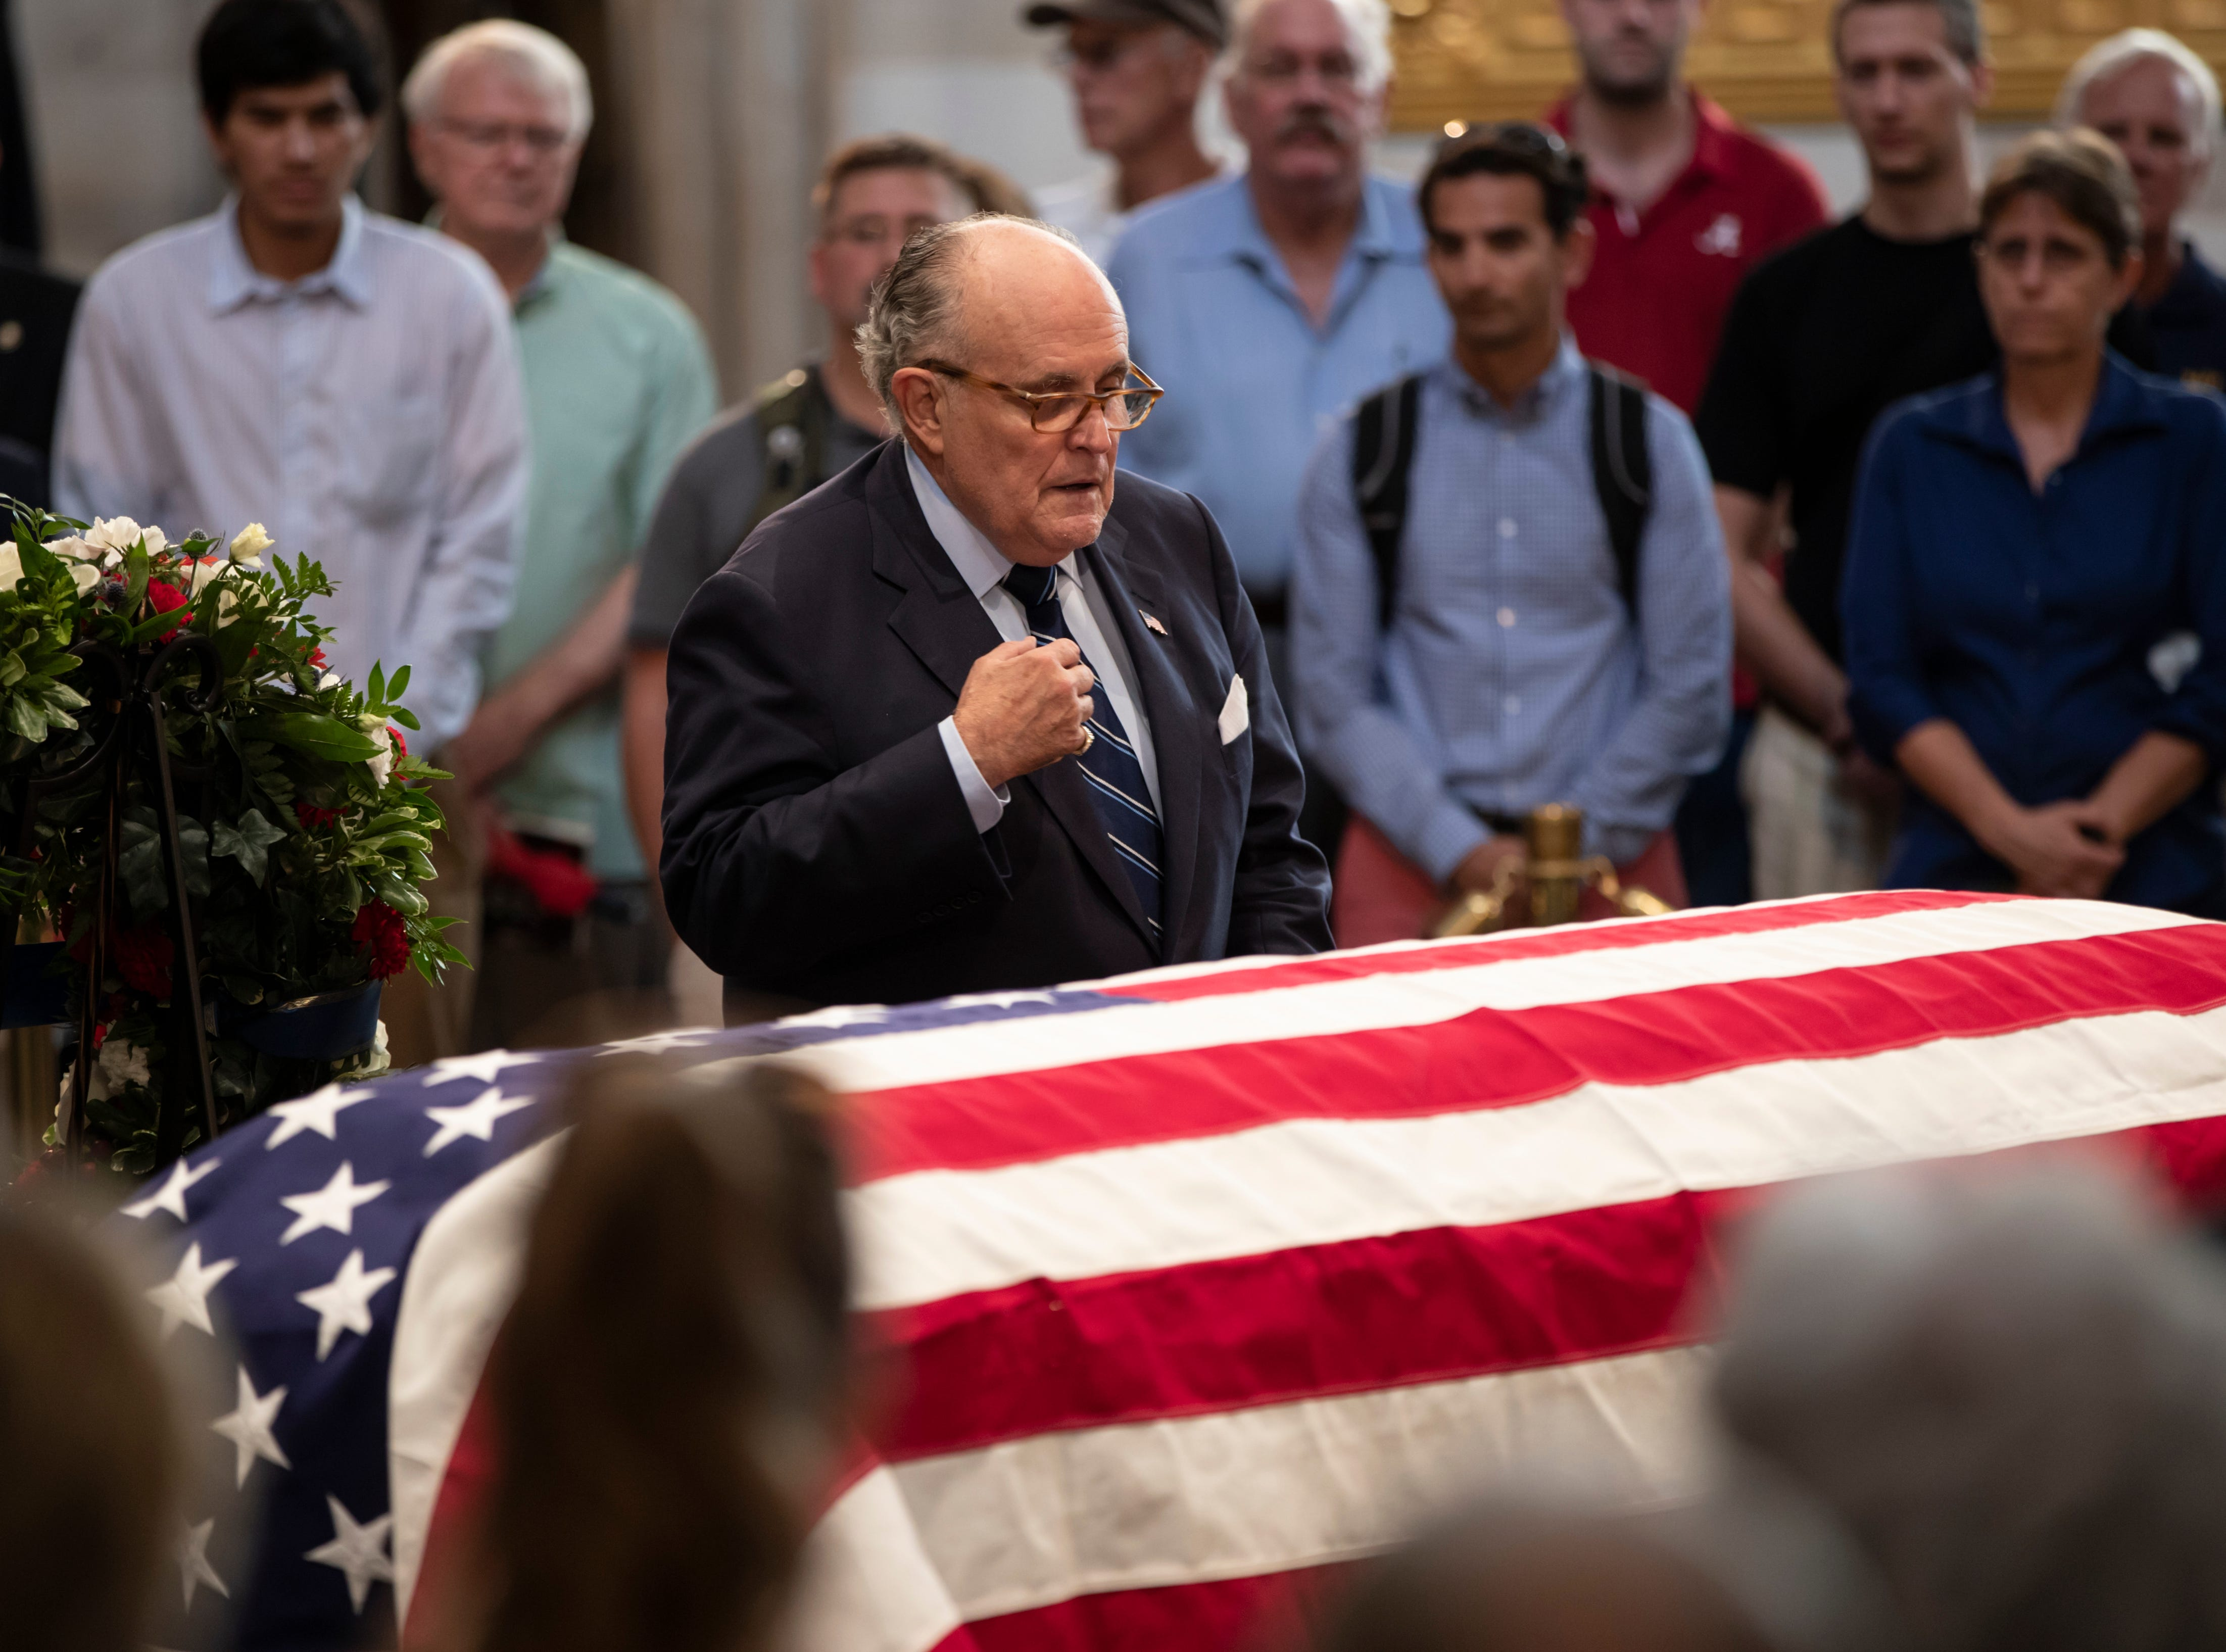 Former New York Mayor Rudy Giuliani, who currently serves as attorney to President Donald Trump, pays his respects at the flag-draped casket of Sen. John McCain of Arizona, who lived and worked in Congress over four decades, in the U.S. Capitol rotunda, Friday, Aug. 31, 2018, in Washington. (AP Photo/J. Scott Applewhite)